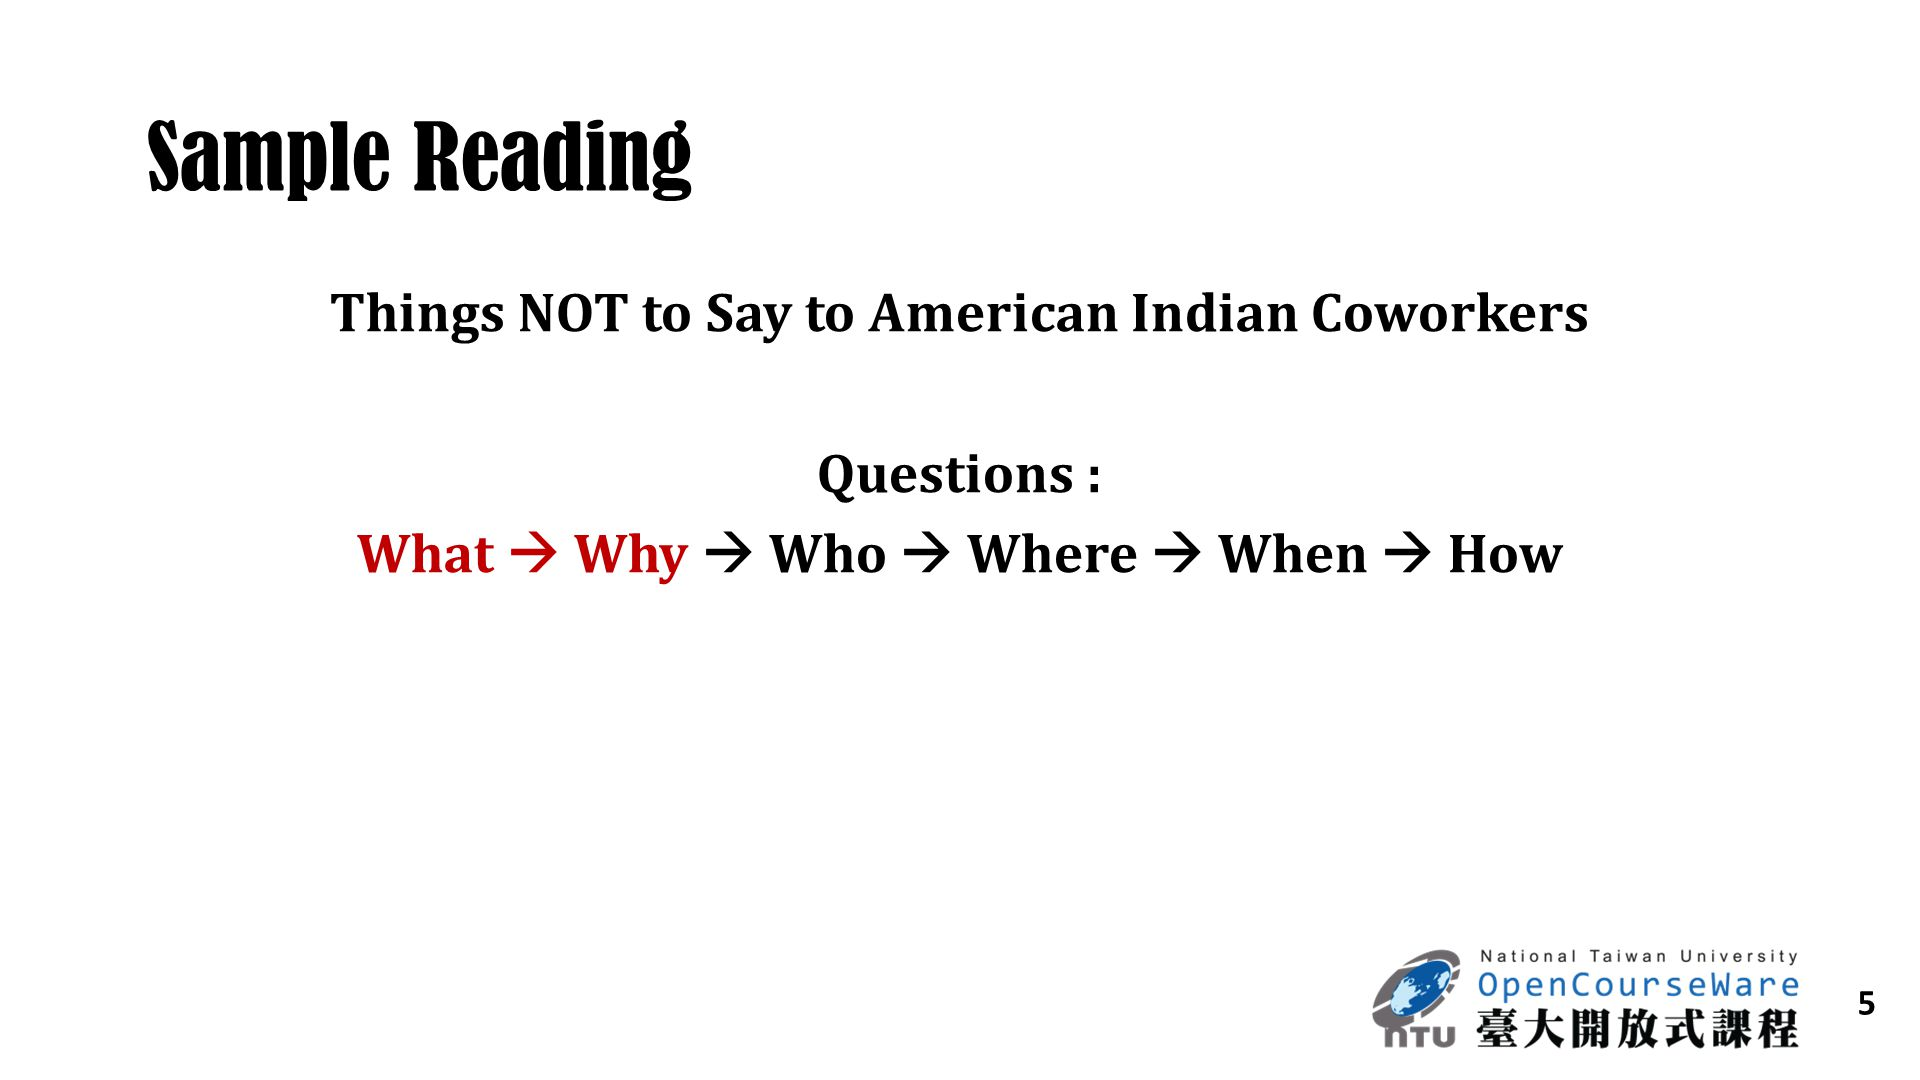 Sample Reading Things NOT to Say to American Indian Coworkers